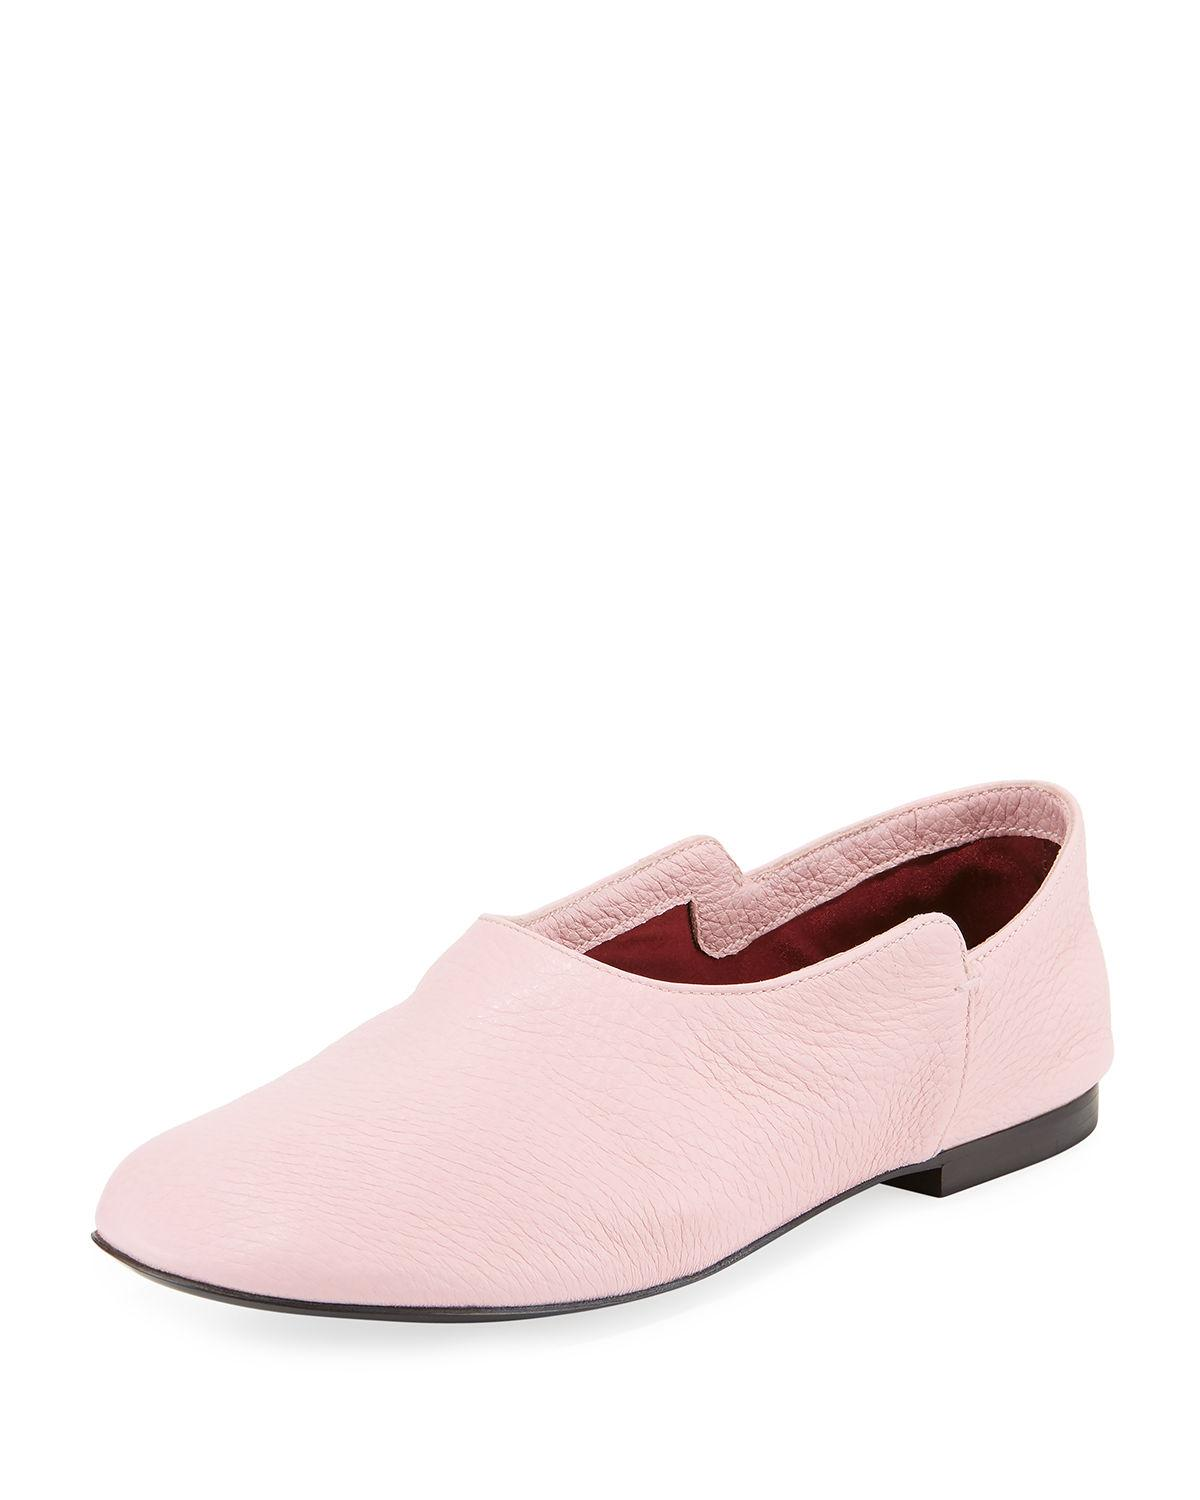 11d9dd8691c The Row s light pink grained leather Boheme loafers are styled with a  rounded toe and lined with ultra-soft satin. This versatile pair features a  fold-down ...